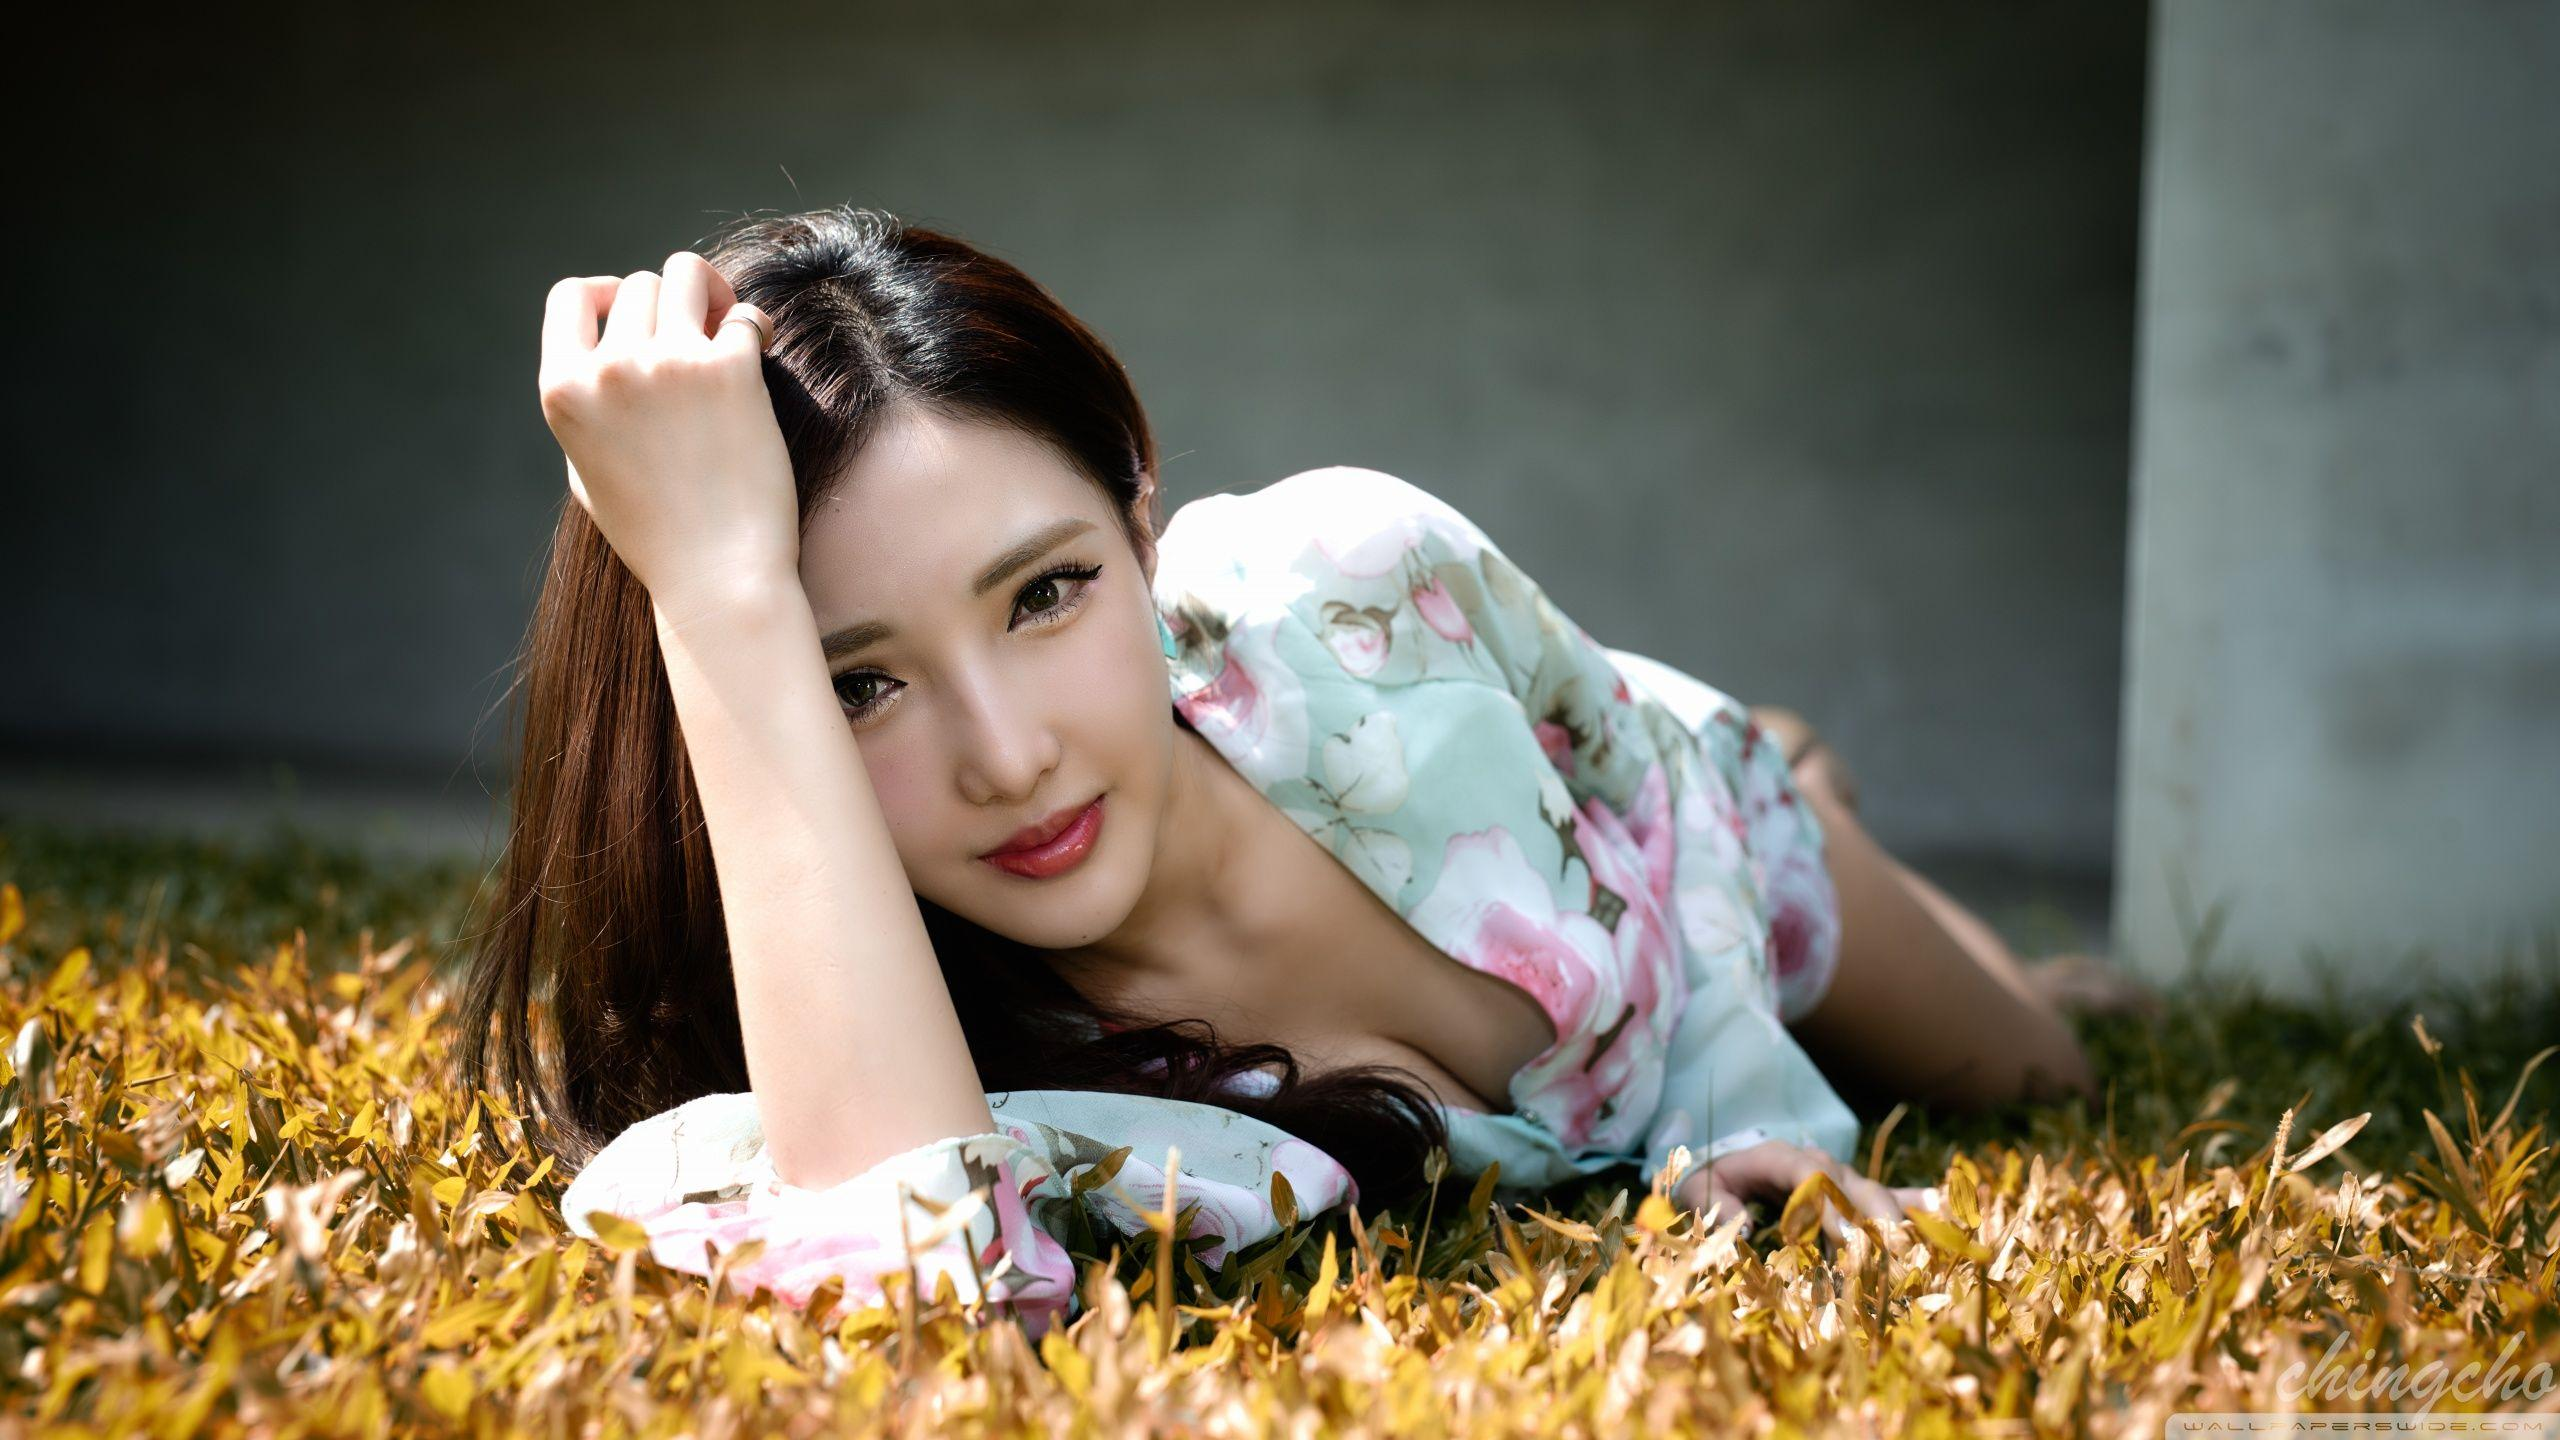 Chinese Girl Wallpapers Wallpaper Cave